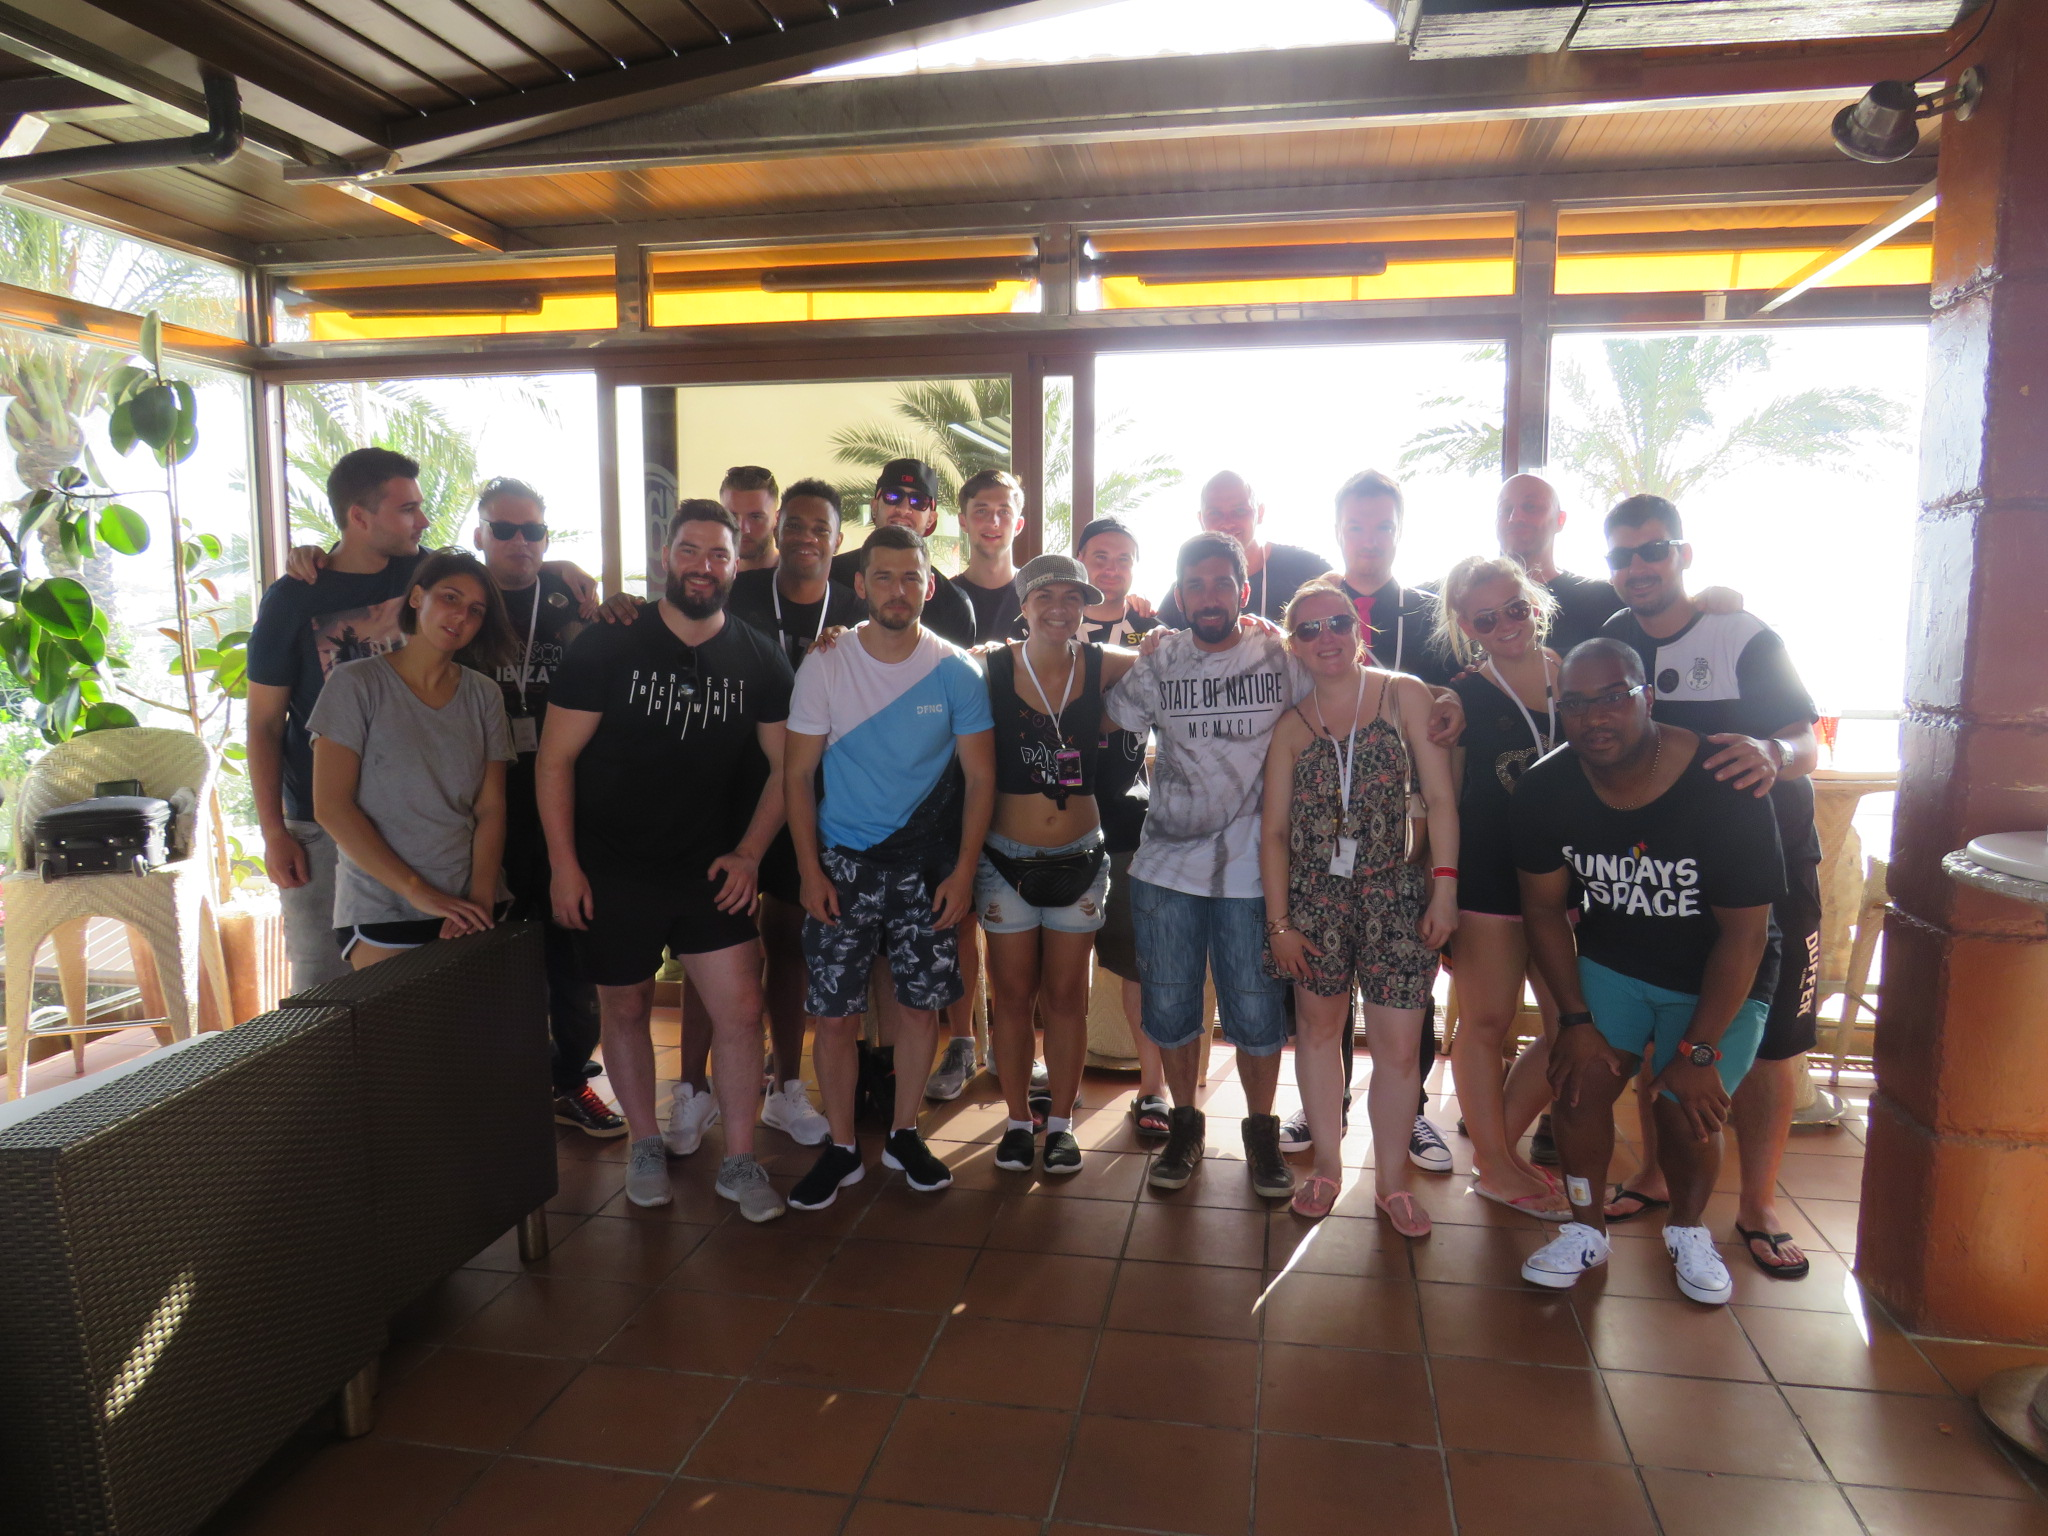 Parasol Ibiza tour group pic (not all are in there)